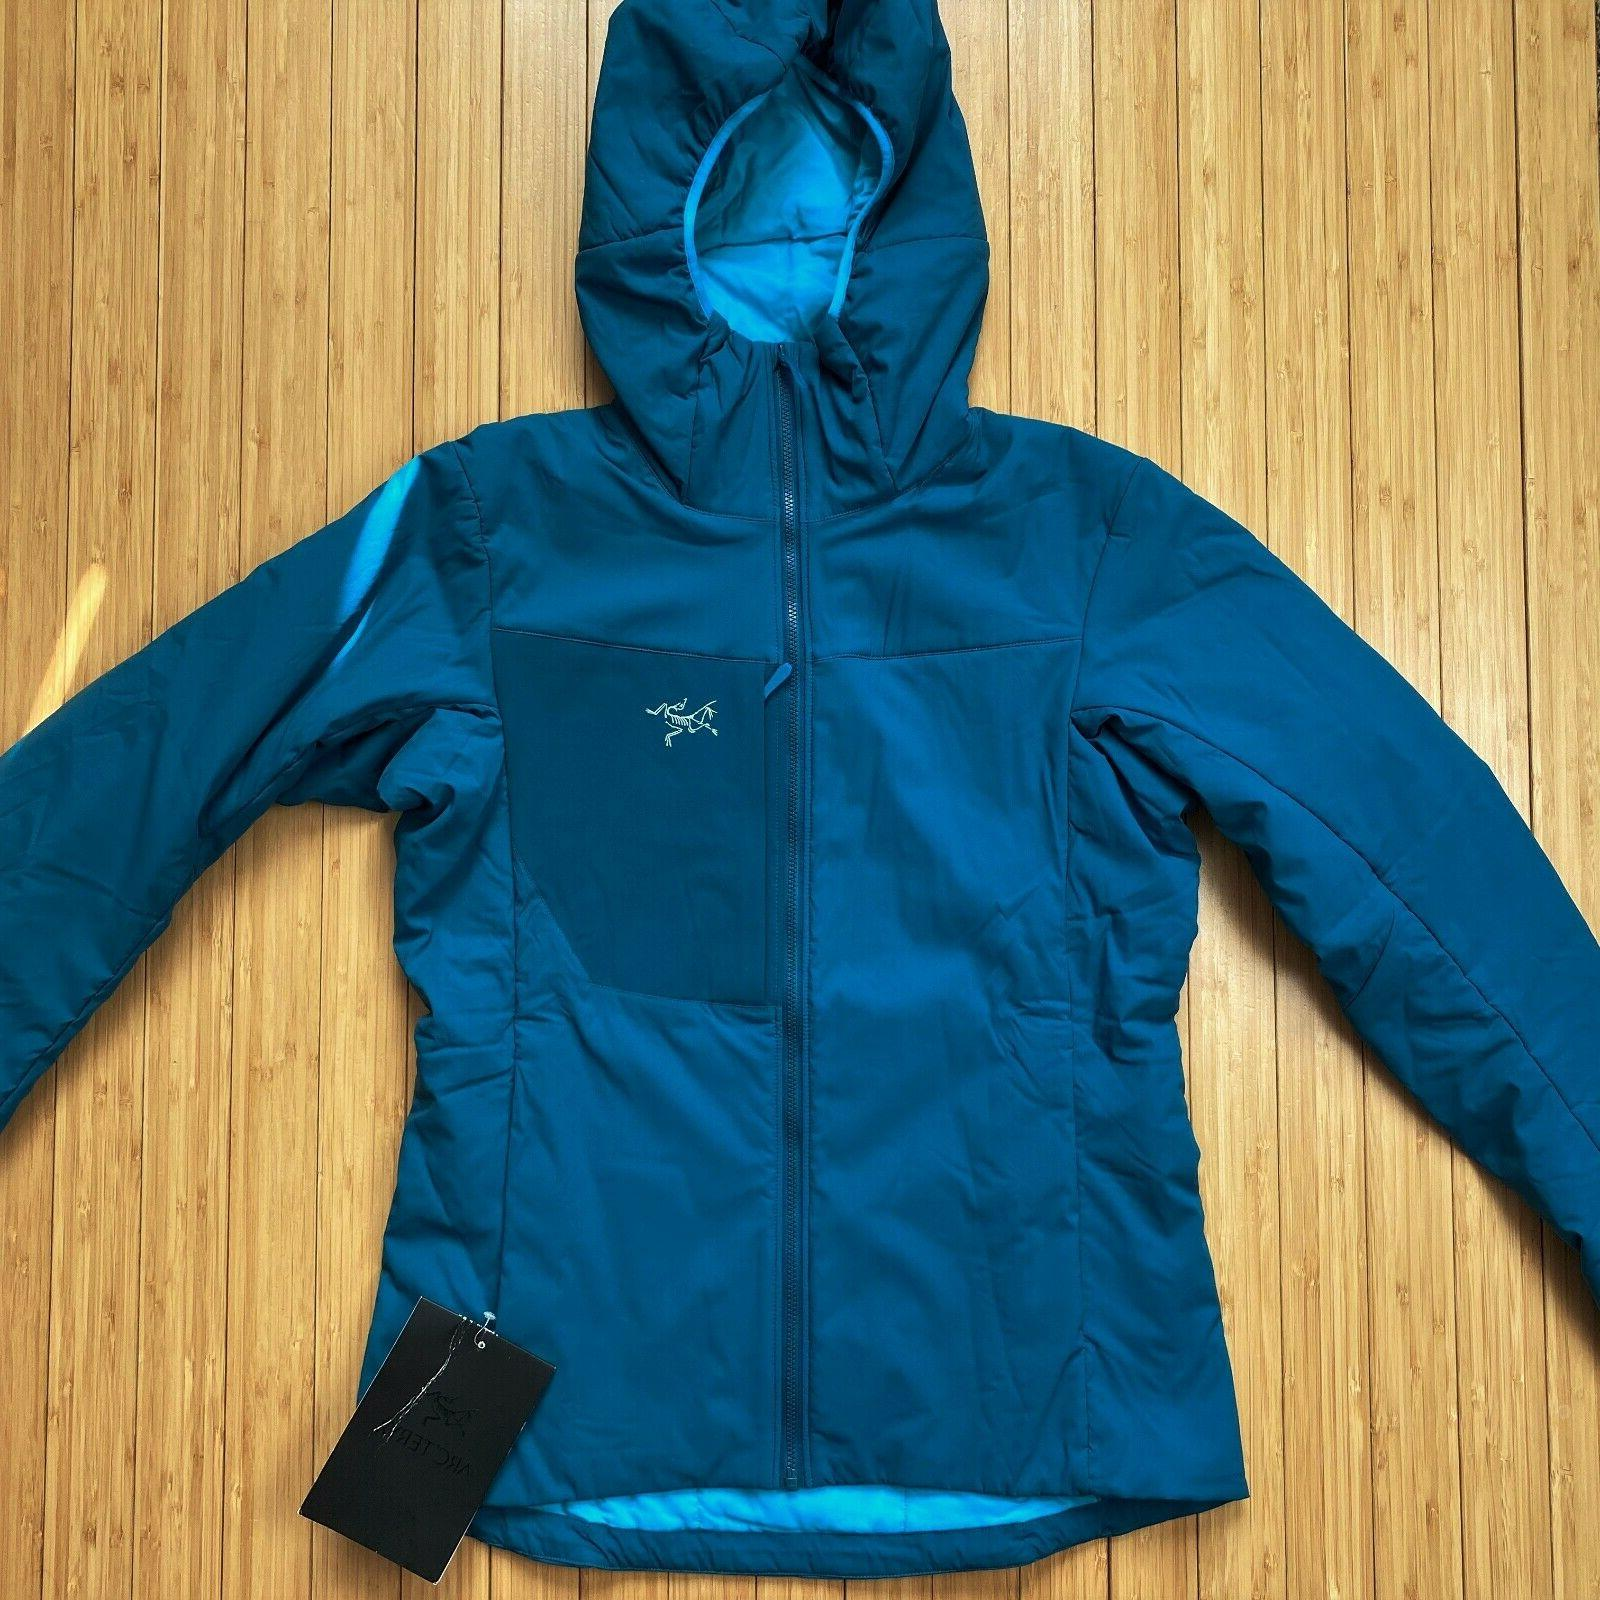 Women's Proton LT Teal Jacket Insulated